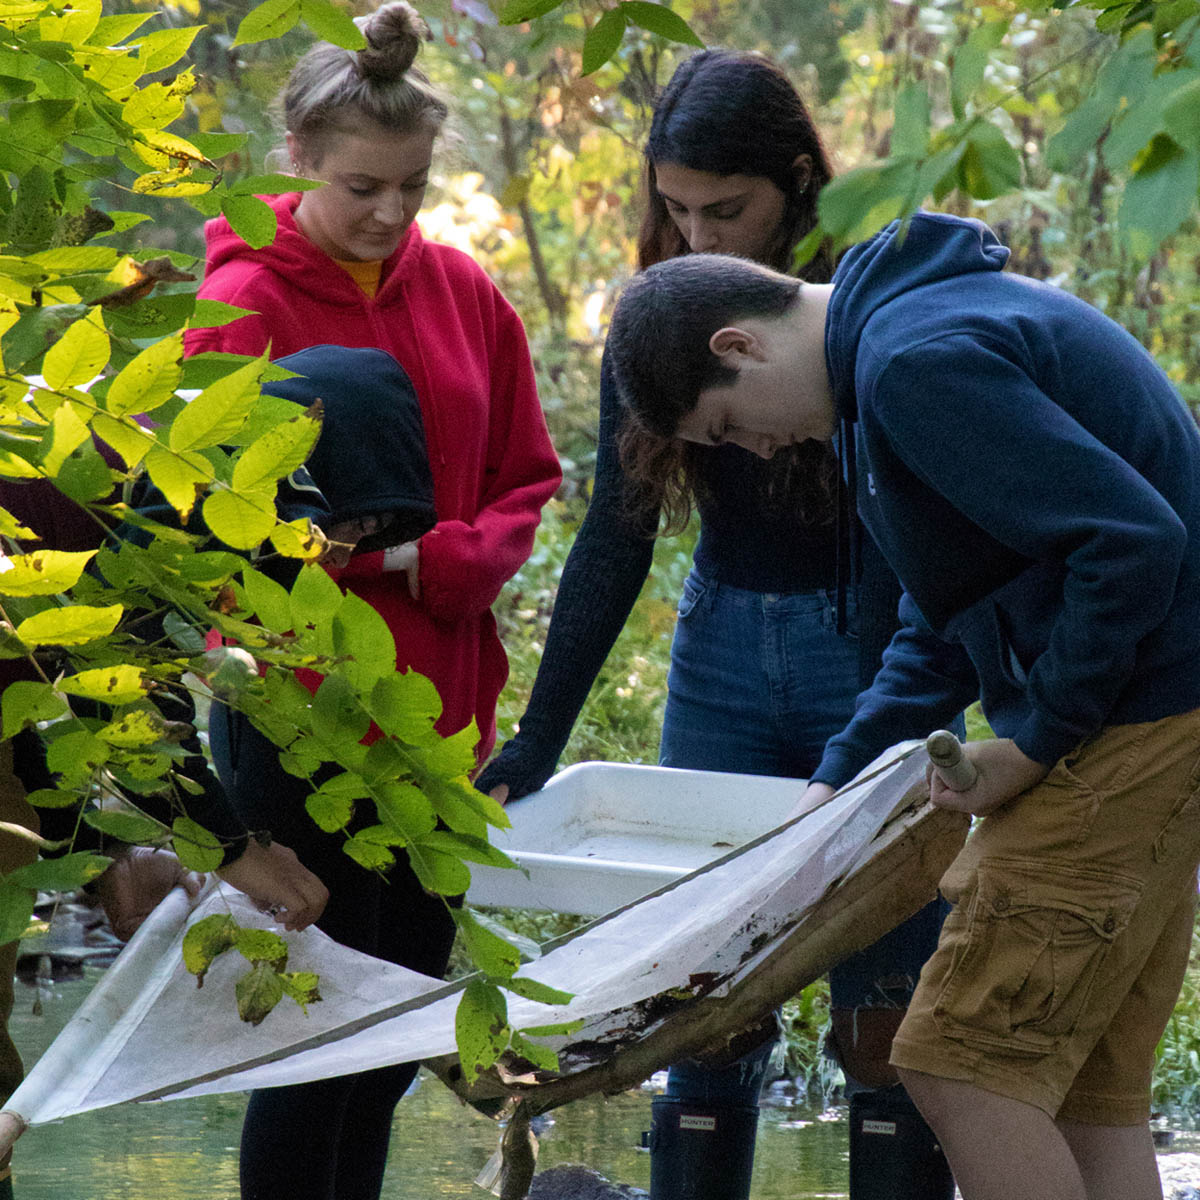 Students collecting materials from a stream for research.